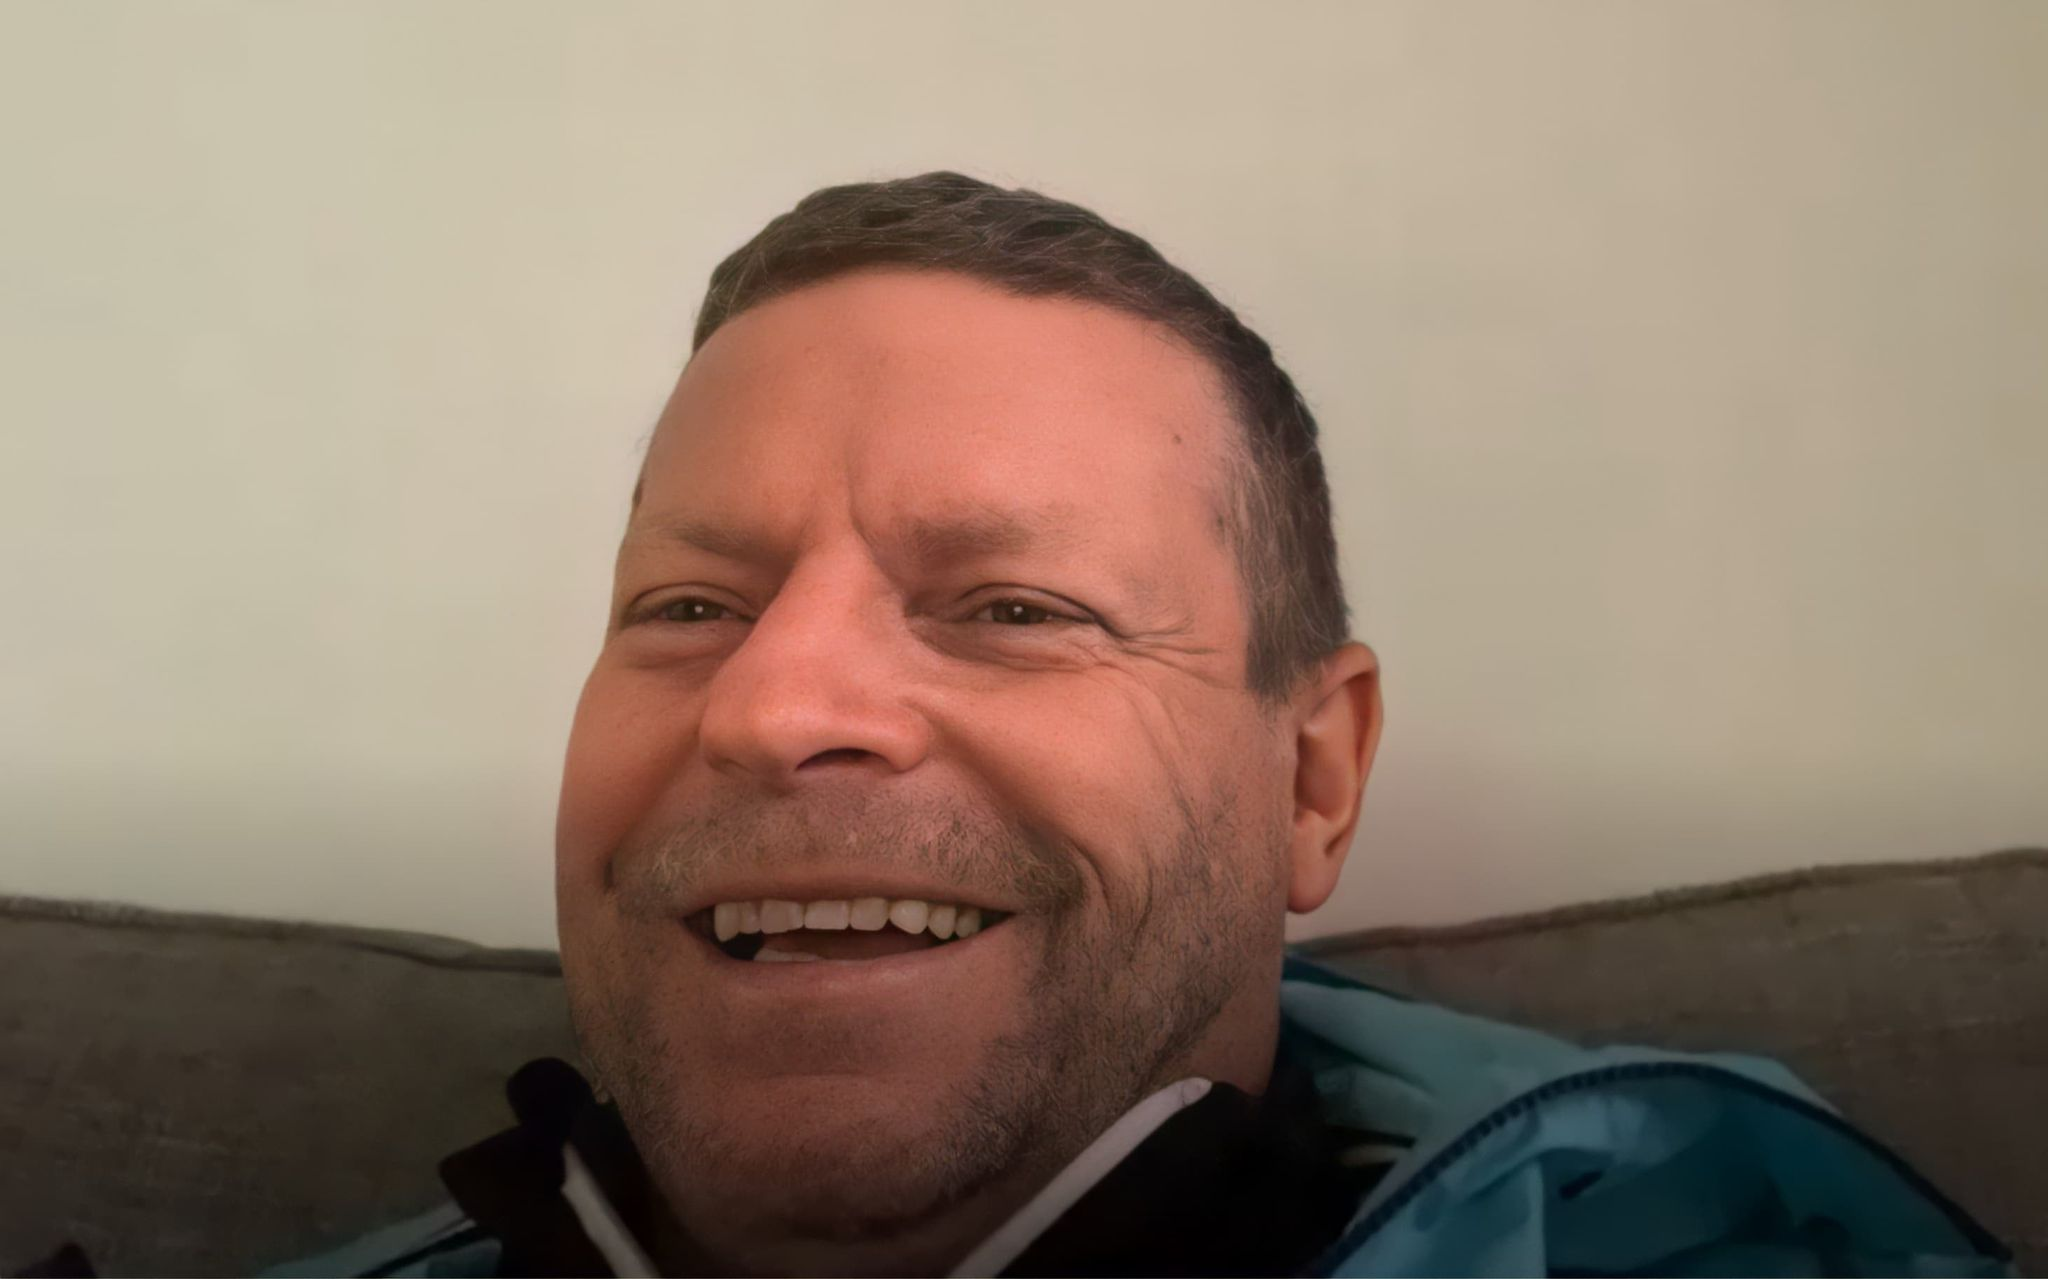 Micky Hazard, former Tottenham Hotspur player, talking about his efforts to stop loneliness over lockdown. He is wearing a blue windbreaker jacket, sitting in his living room, and smiling.